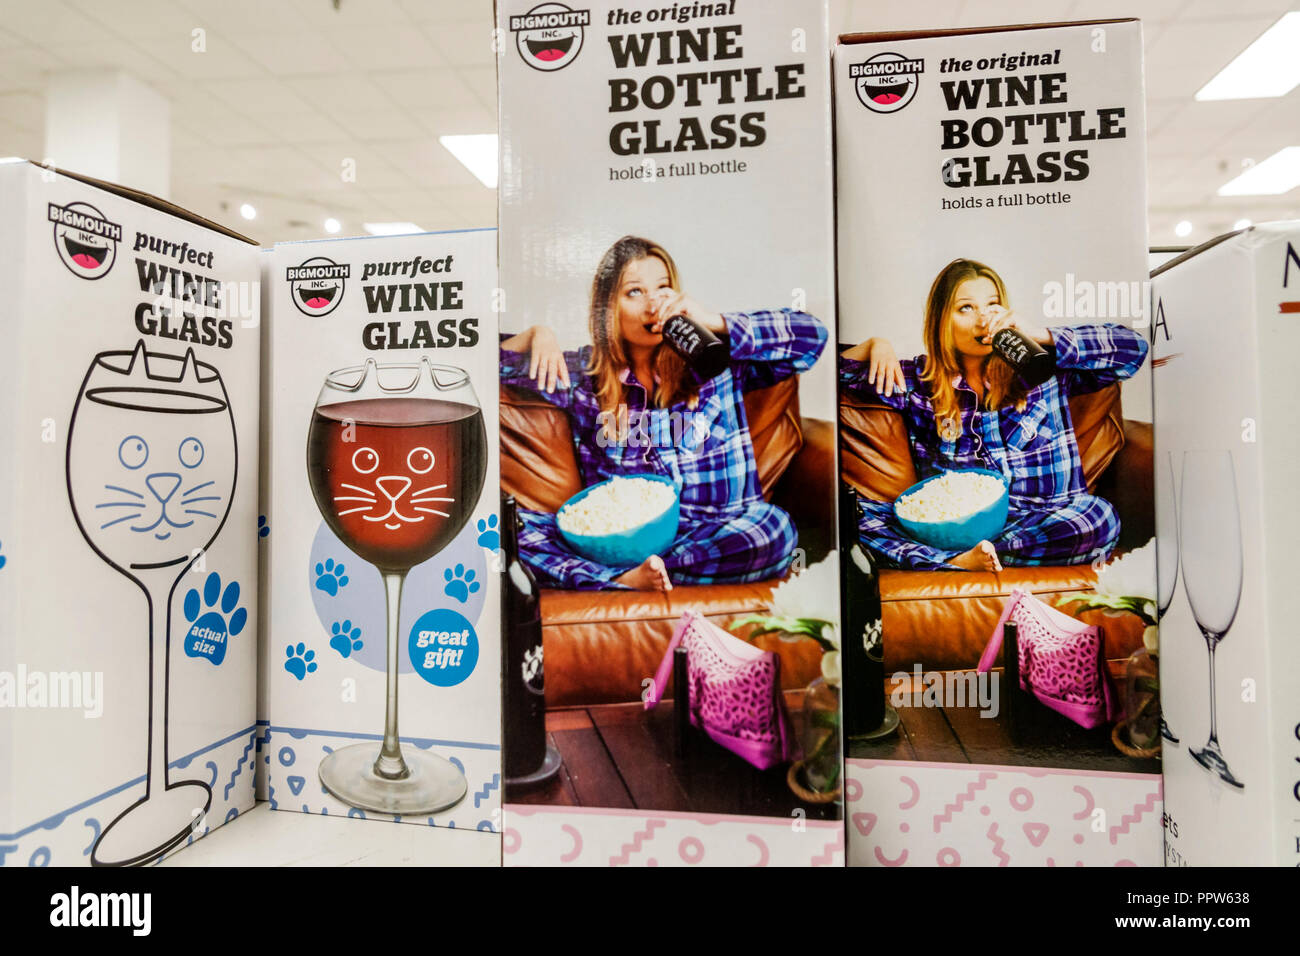 Miami Florida Kendall Dadeland Mall JC J.C. Penny Department Store shopping inside sale display boxes wine bottle glass - Stock Image